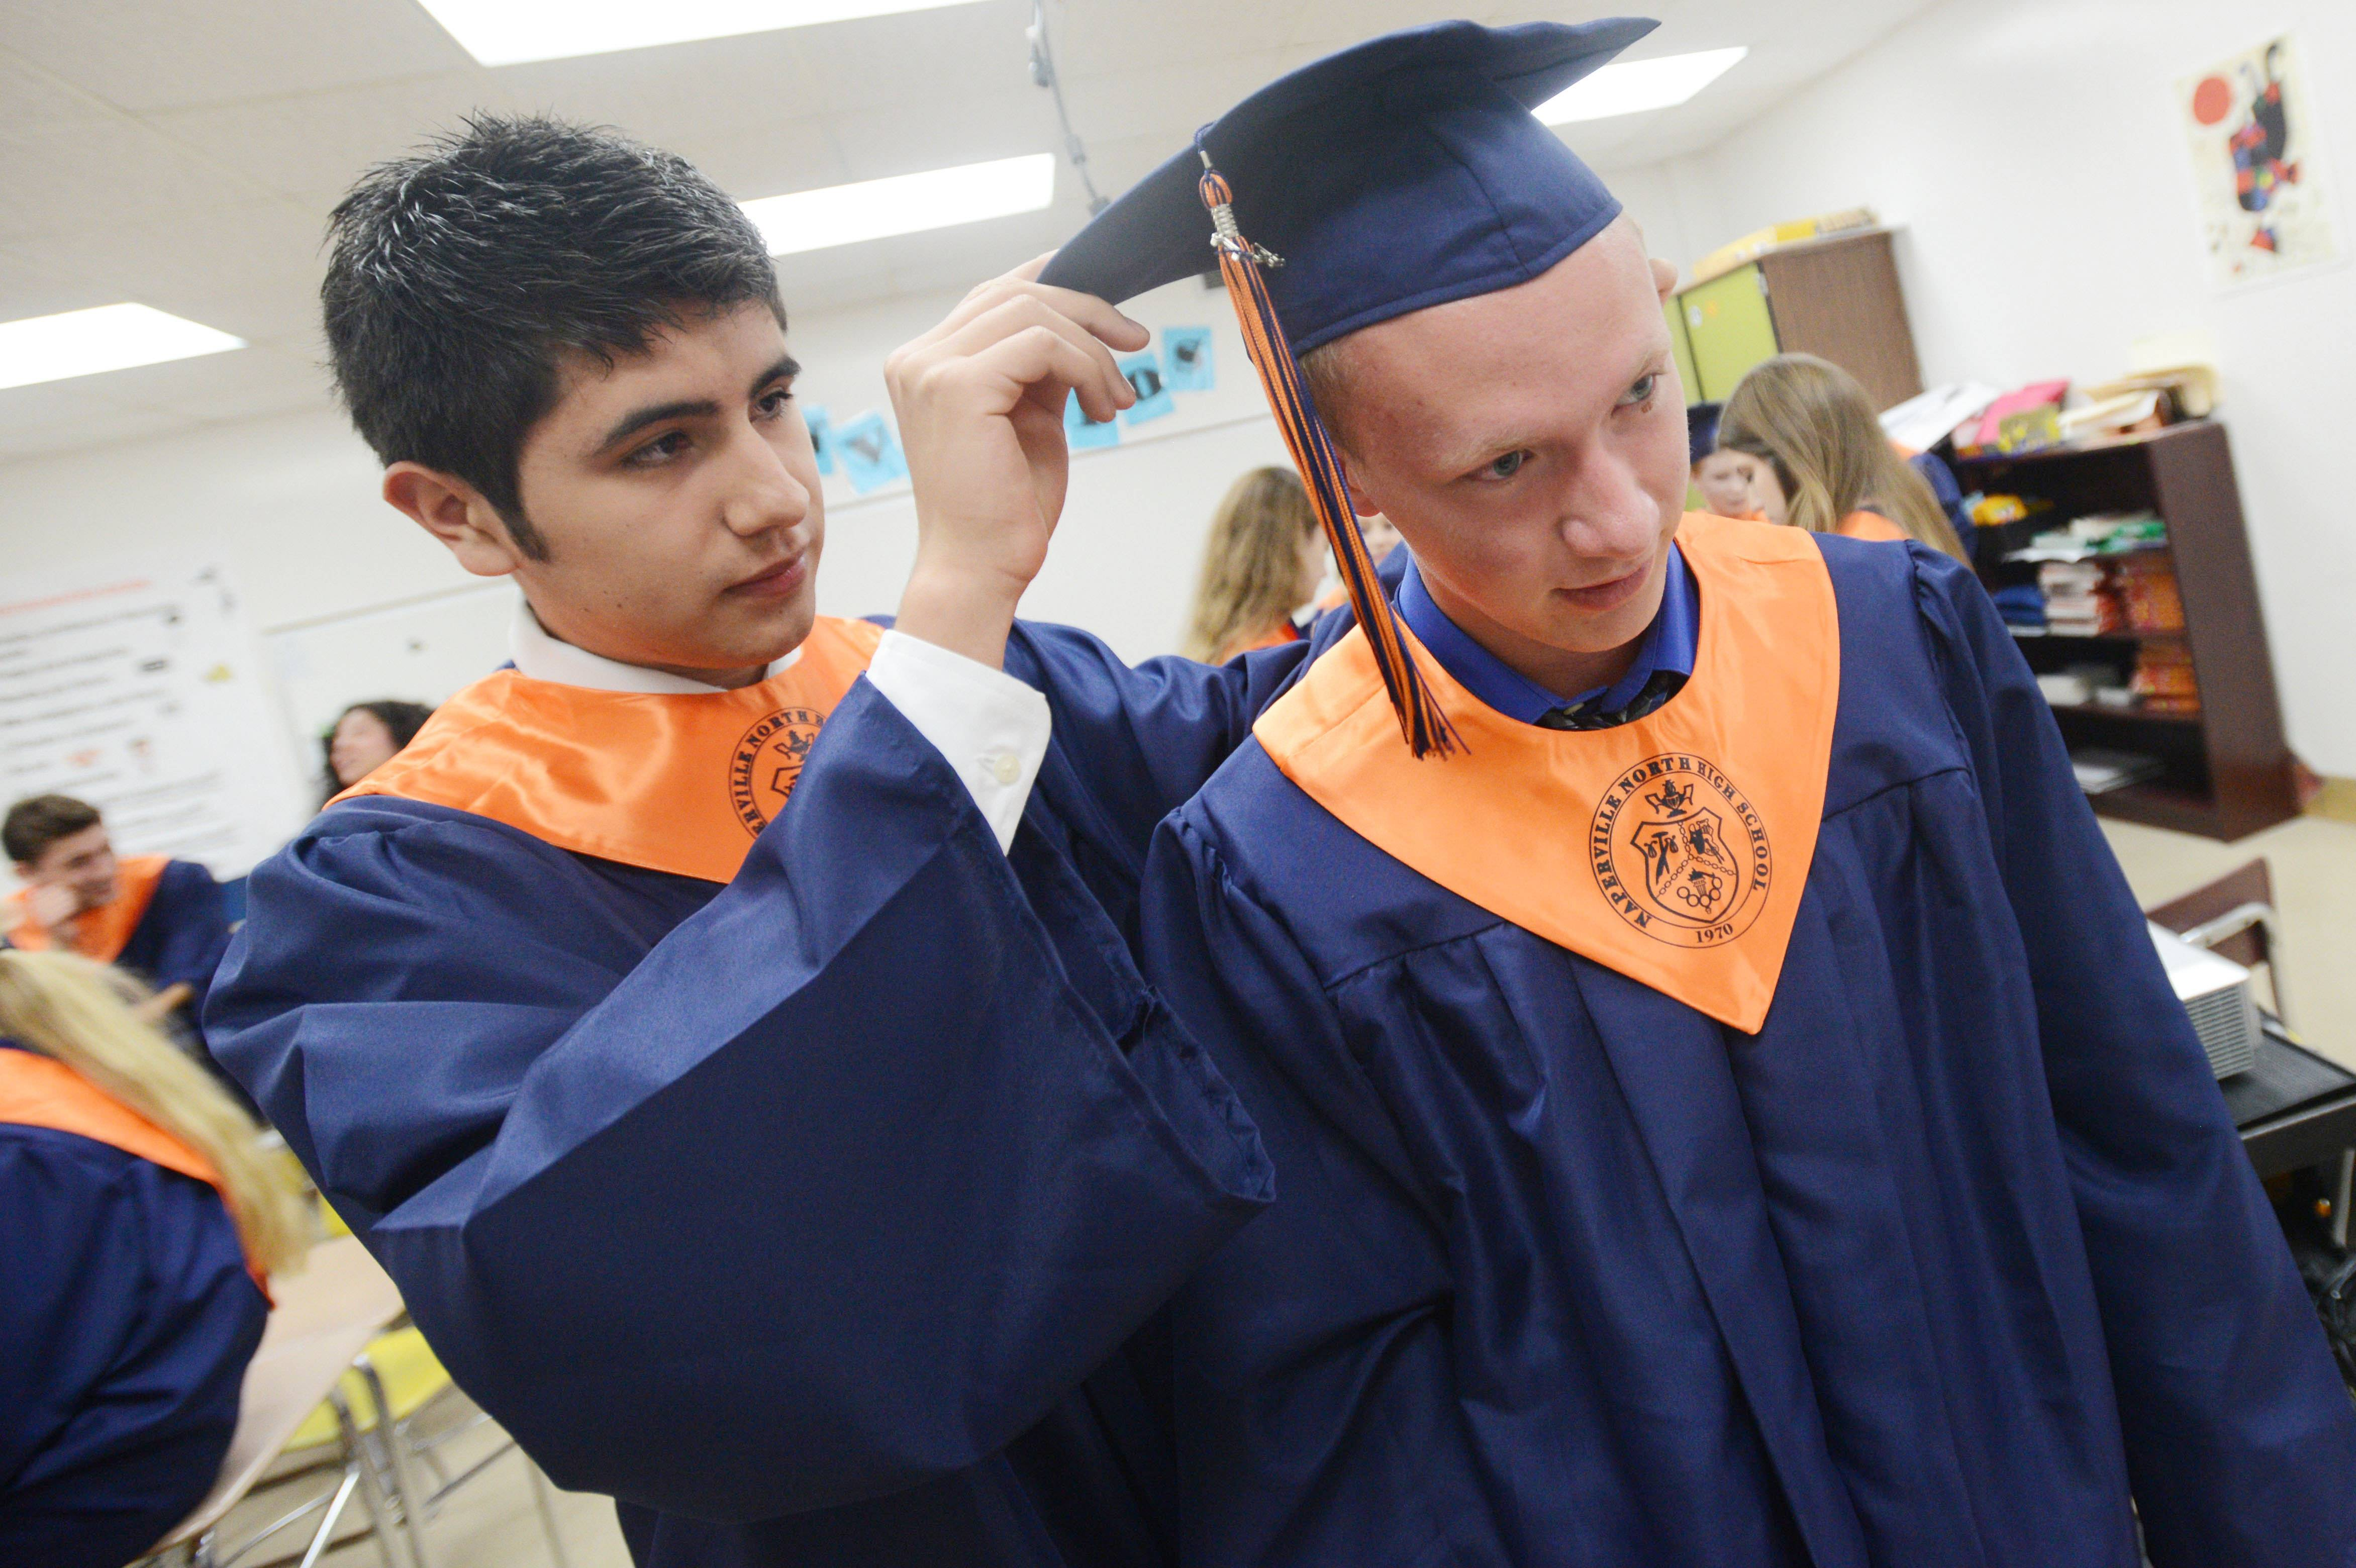 Francisco Espino,17, of Naperville helps Colin Edgington,17, of Naperville with his hat before the start of the Naperville North High School graduation Wednesday.